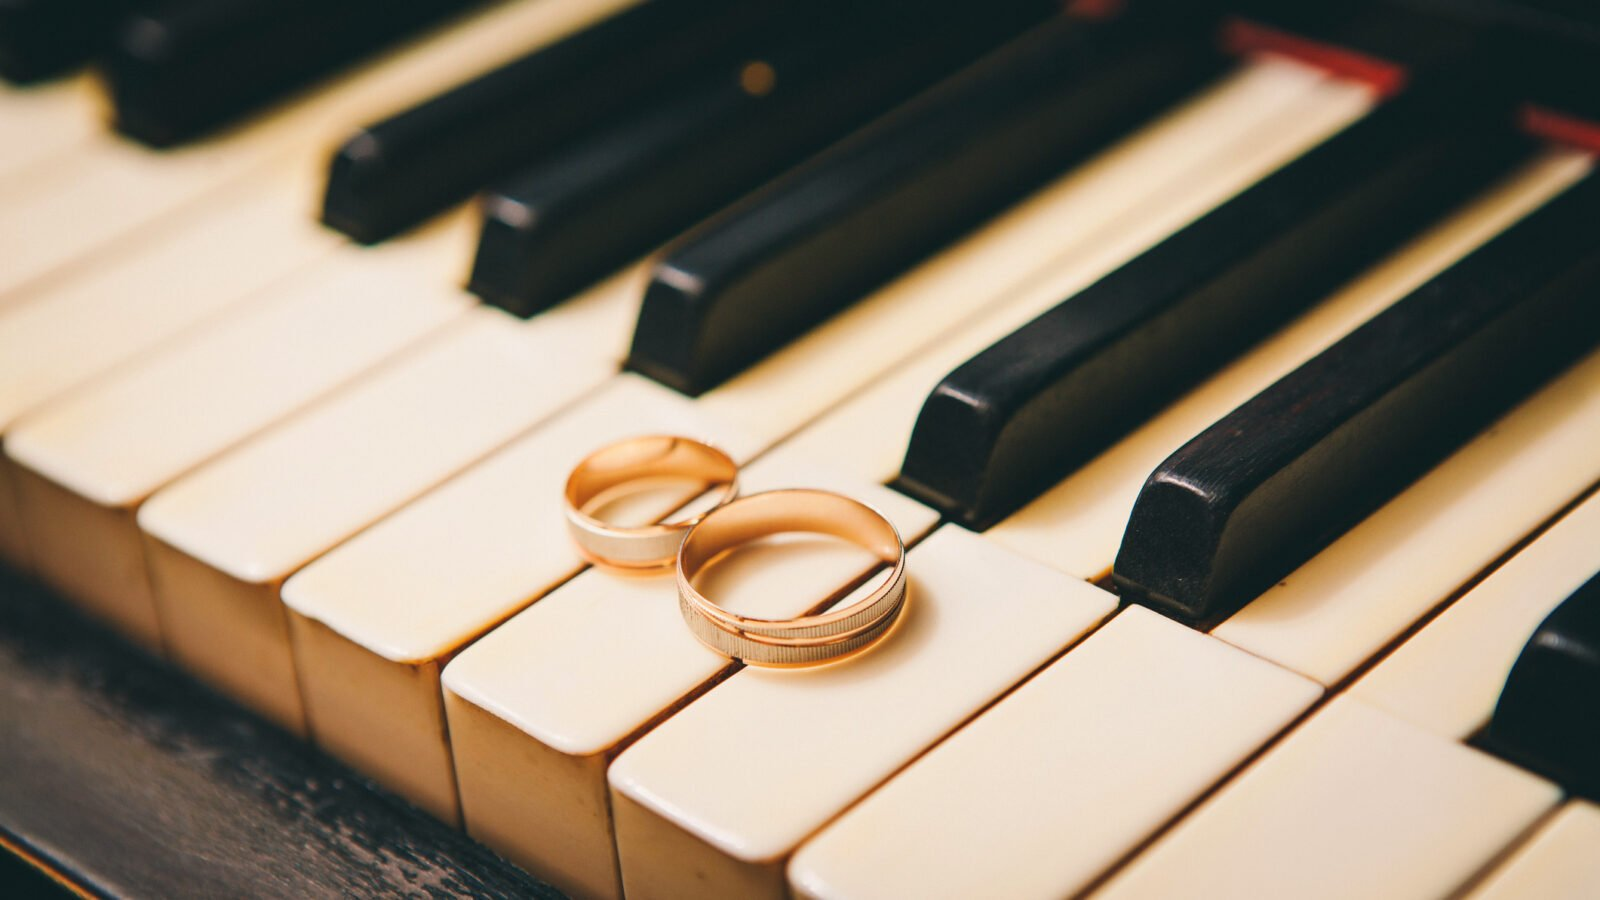 Classical music for your wedding (that's not Pachelbel's Canon